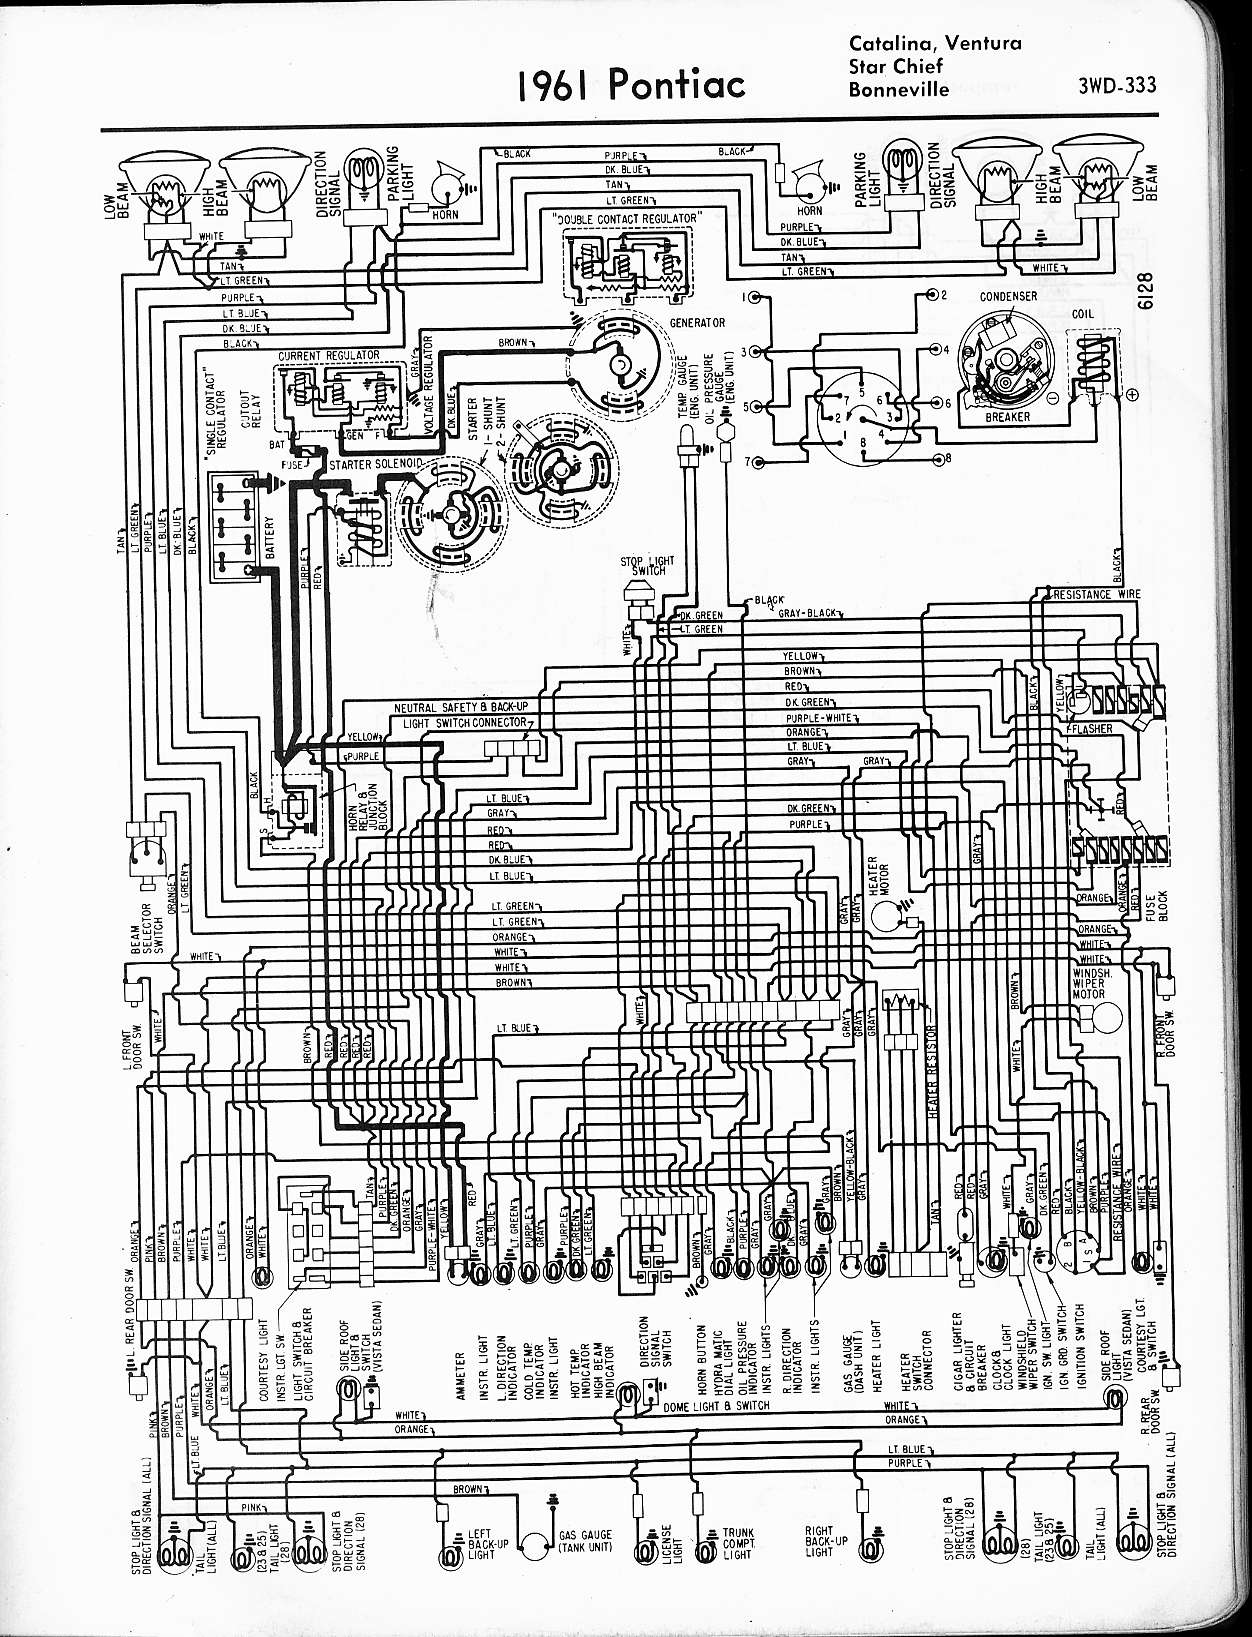 wallace racing wiring diagrams rh wallaceracing com 1965 pontiac wiring diagram 1964 pontiac catalina wiring diagram